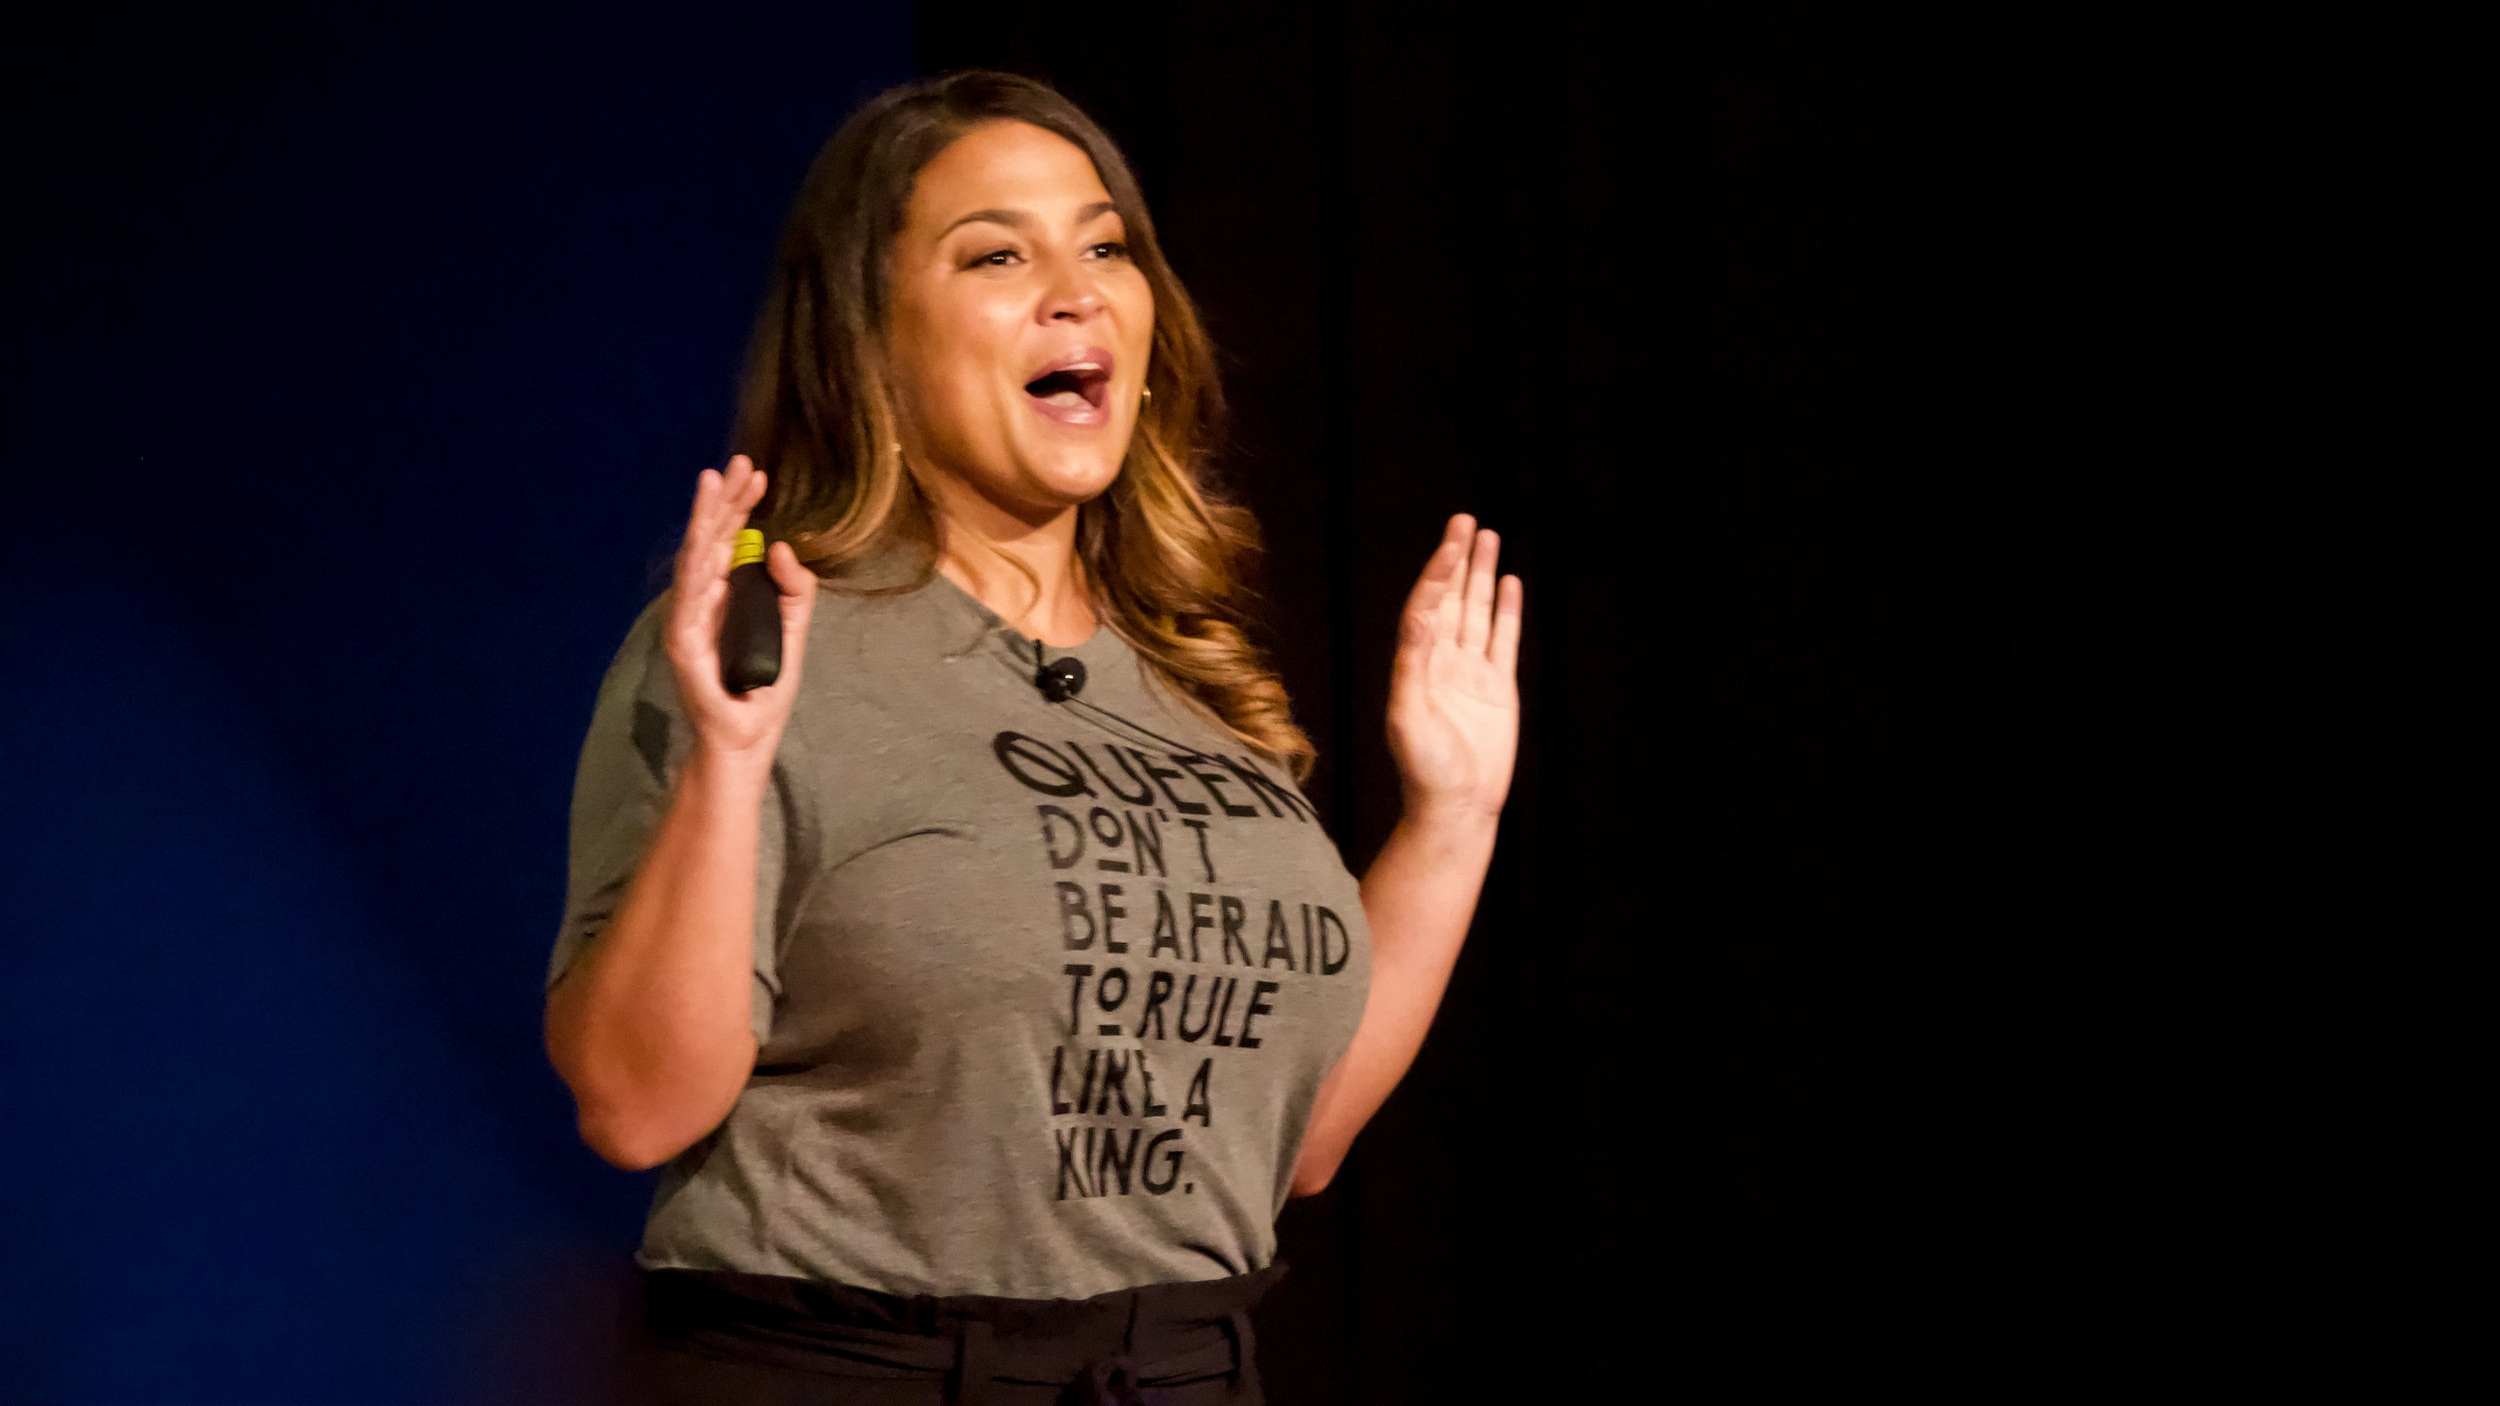 """Speaker - I'm a two-time TEDx speaker. I speak at events & meetings focusing on messages that bring us all towards speaking & living our truth and embracing our """"otherness"""" to connect through our shared humanity."""